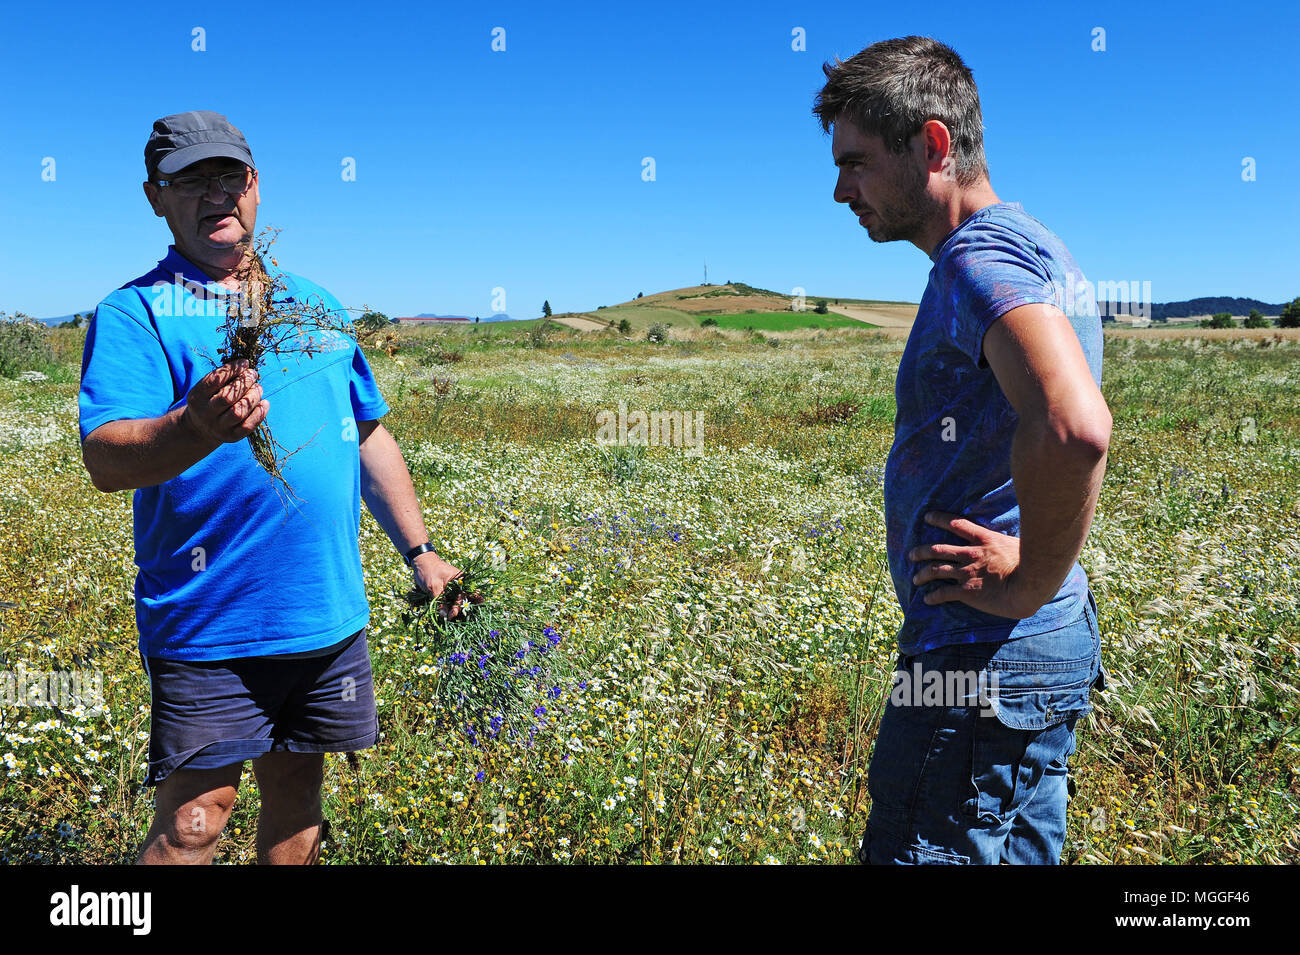 Farmers inspect a soon-to-be-harvested field of lentils nearby Landos, in the Le Puy region. - Stock Image